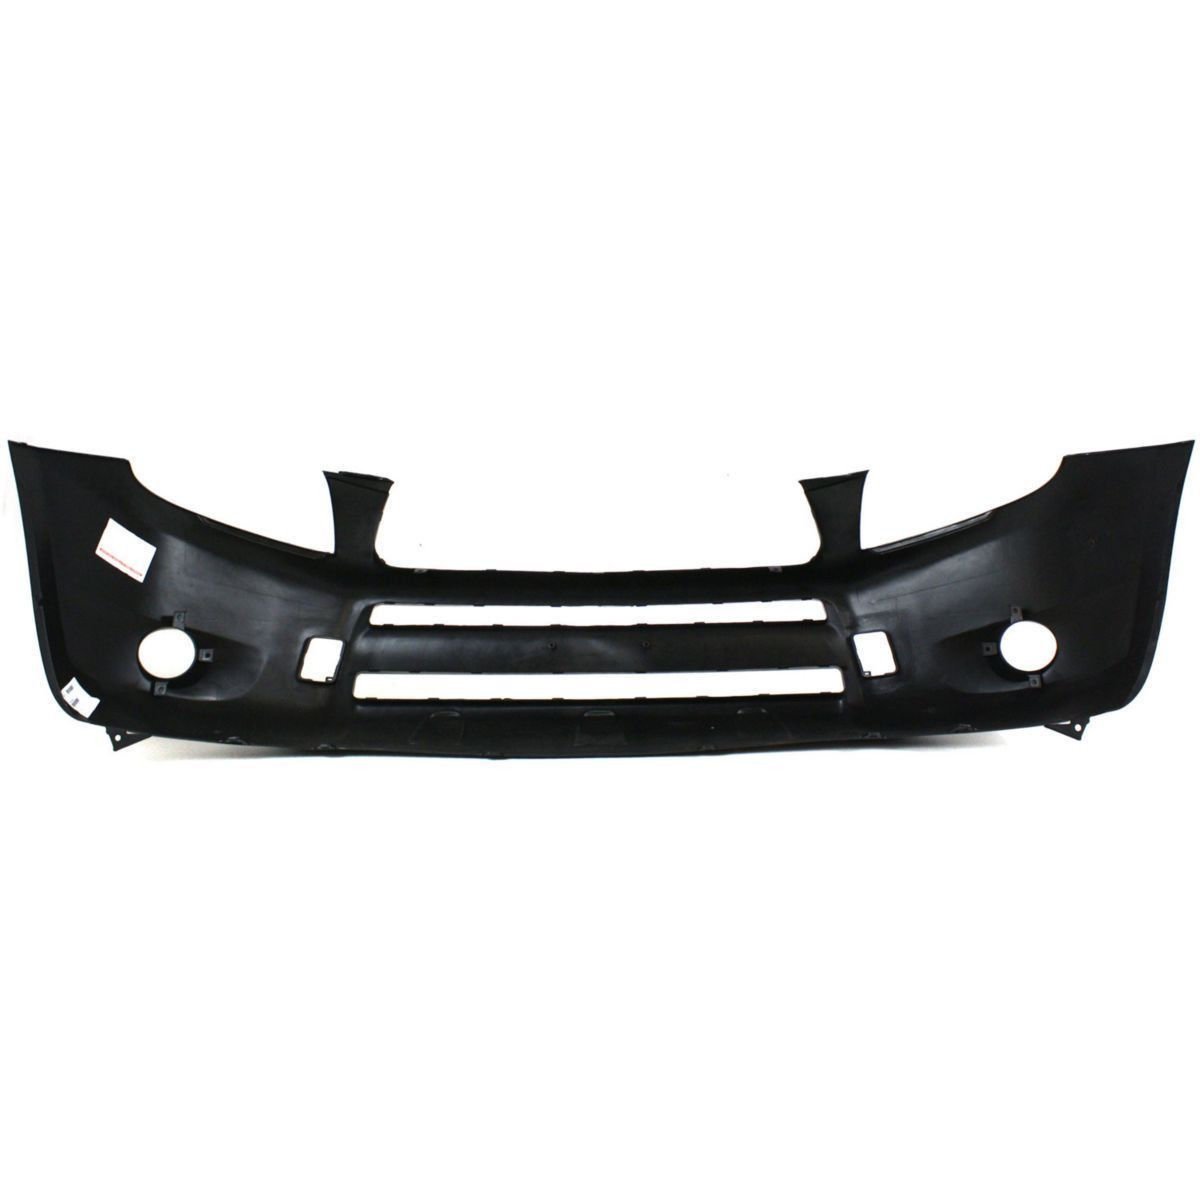 2006-2008 TOYOTA RAV4 Front Bumper Cover base/limited model  w/o wheel opening flares Painted to Match